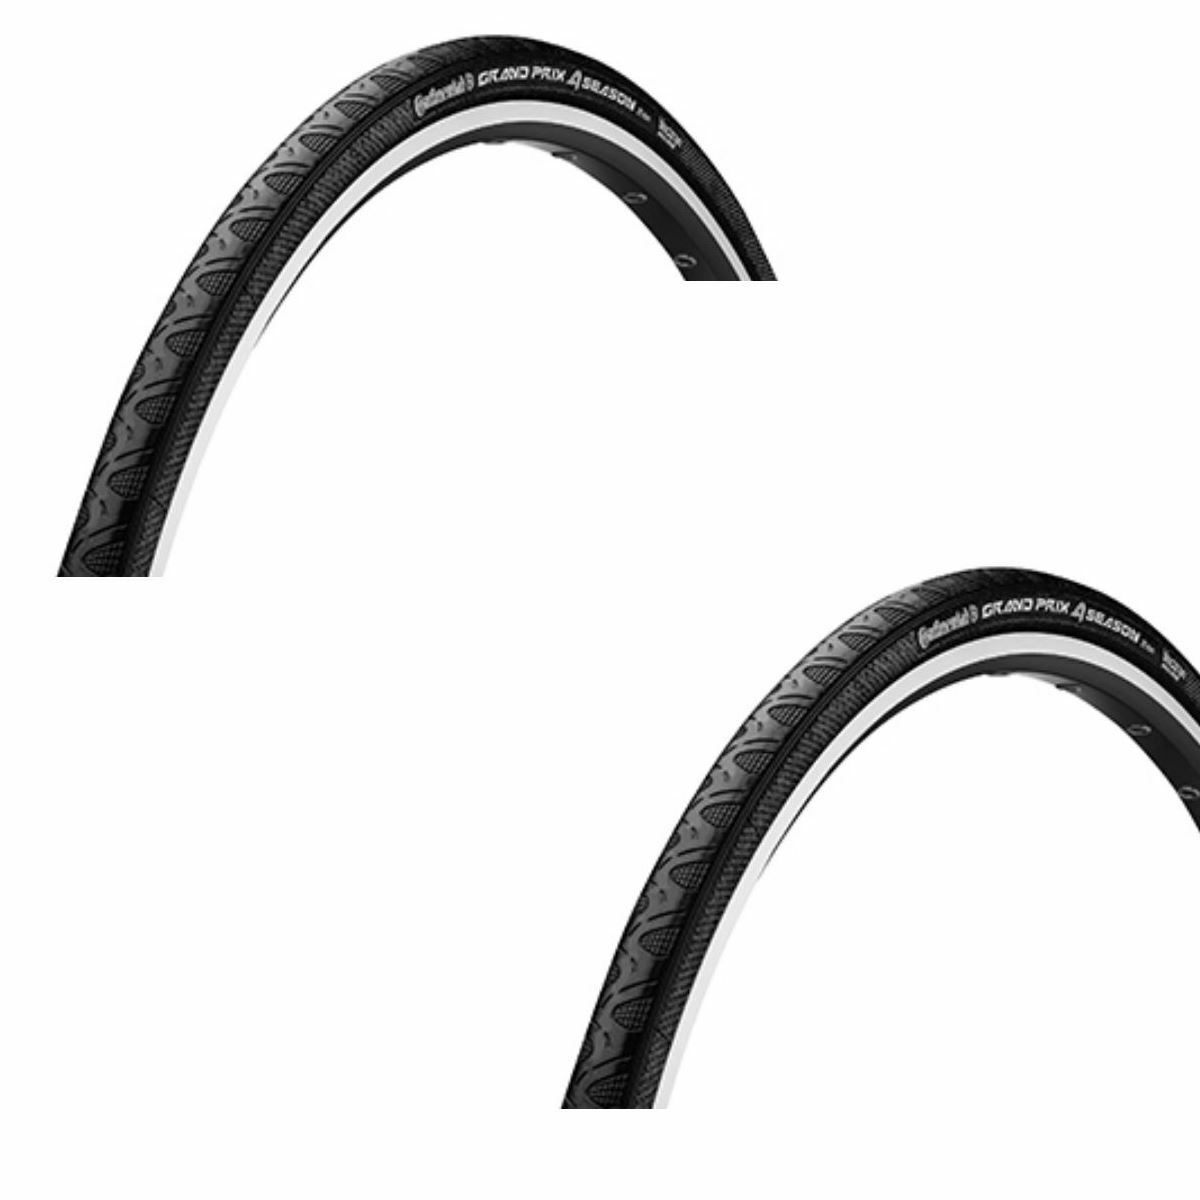 Continental Grand Prix 4-season Pleated Band Set of 2 - Front Tyre + Rear Tires